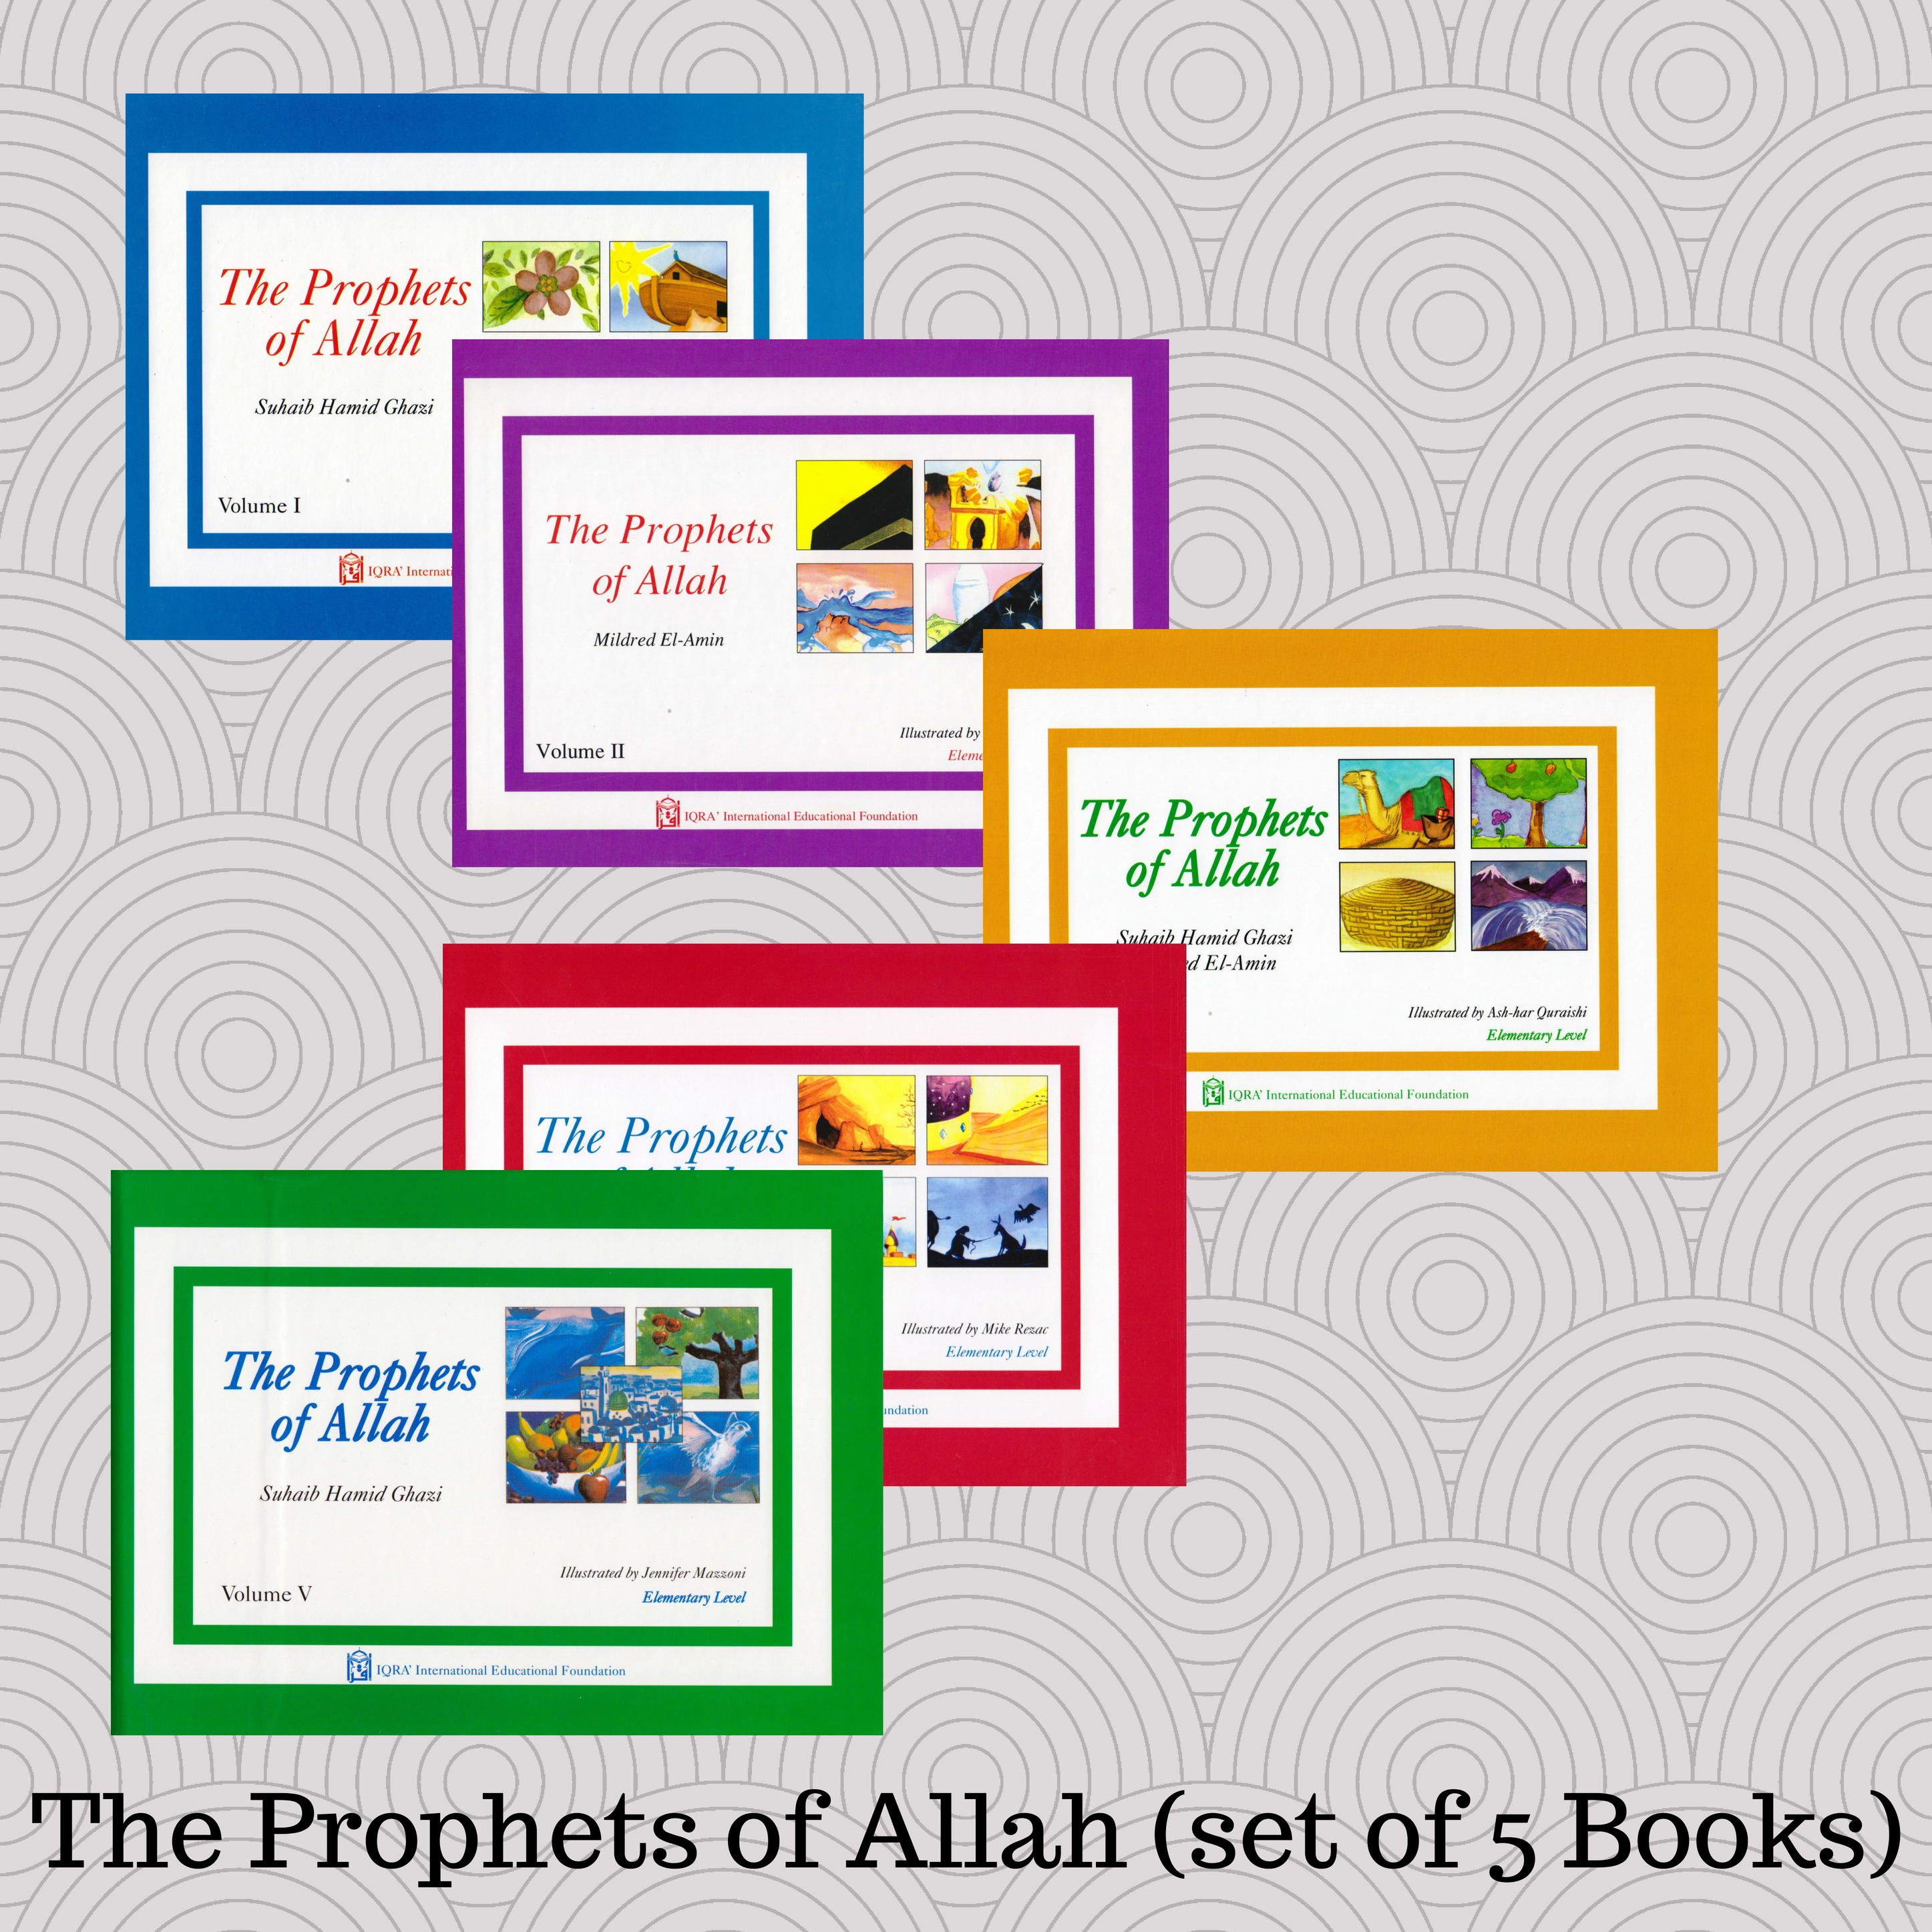 The Prophets of Allah (set of 5 Books)